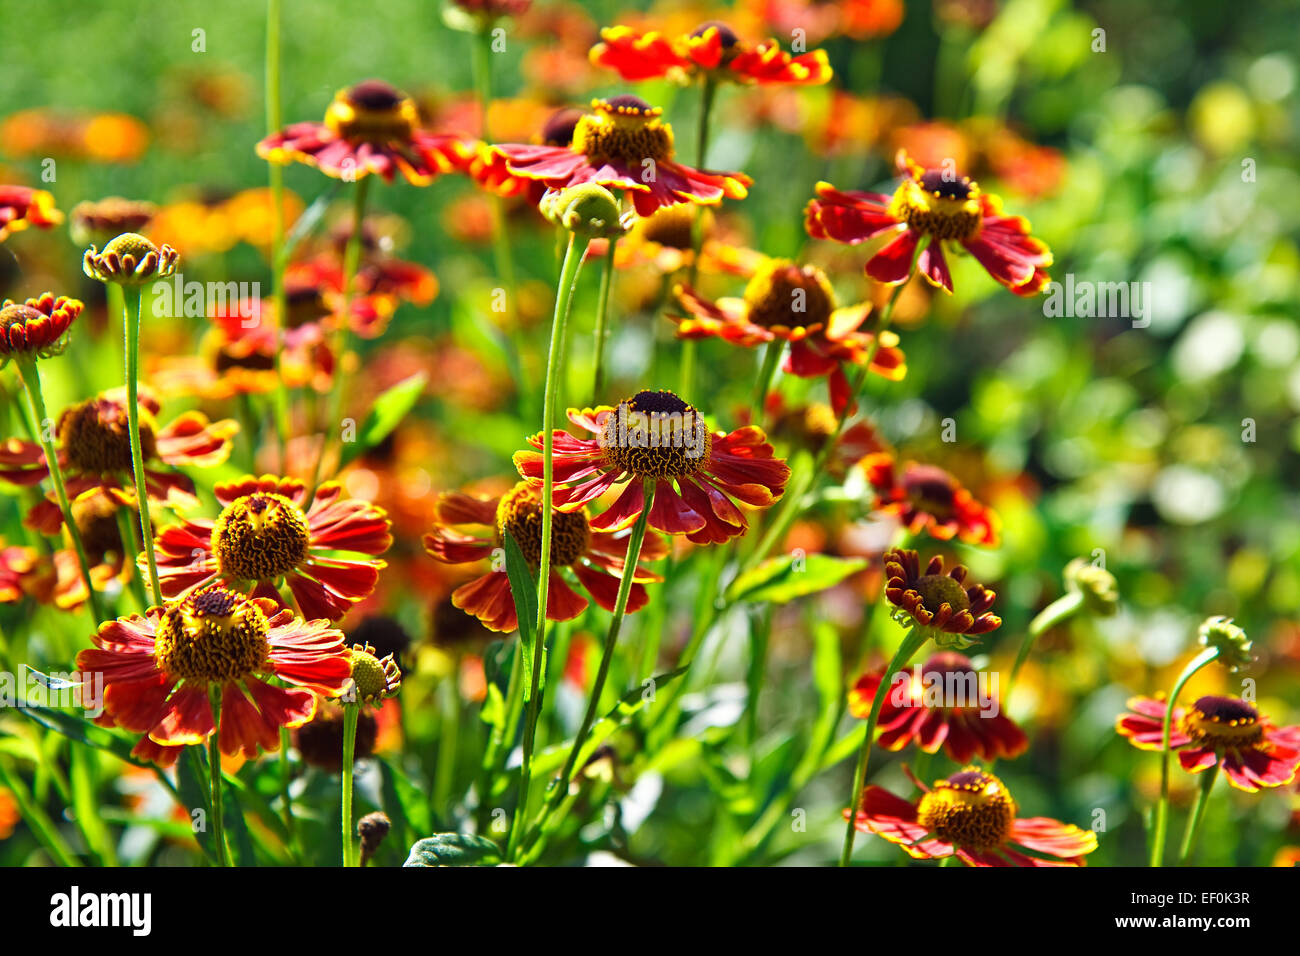 Blooming flowers. - Stock Image